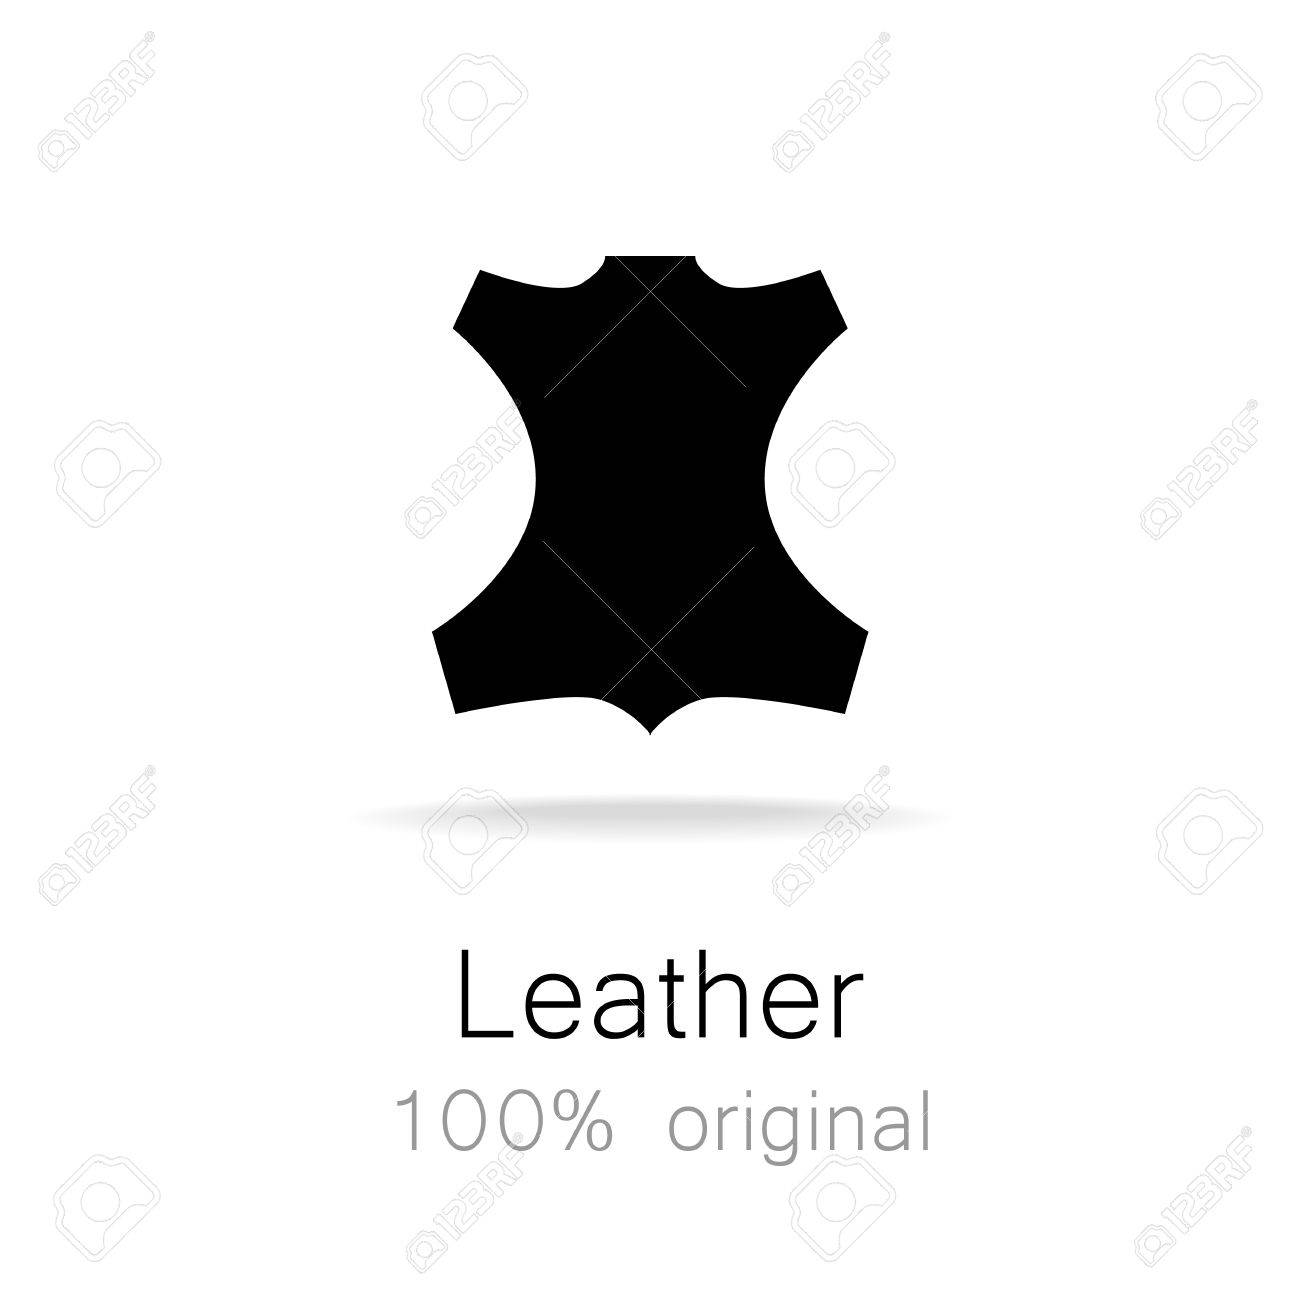 leather 100 original template sign for the label logo advertising